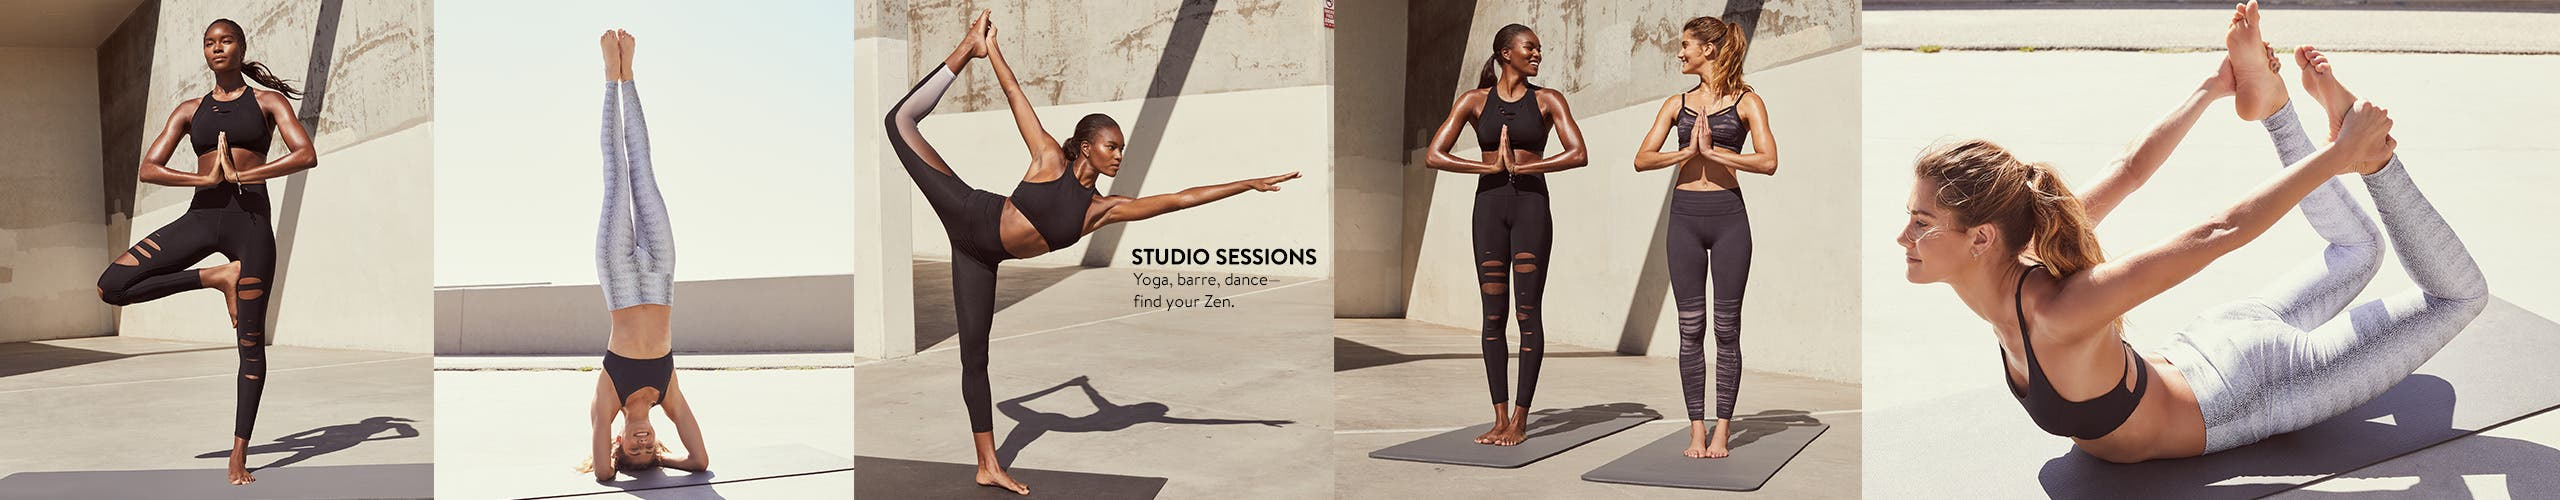 Activewear for yoga, barre, dance and more.